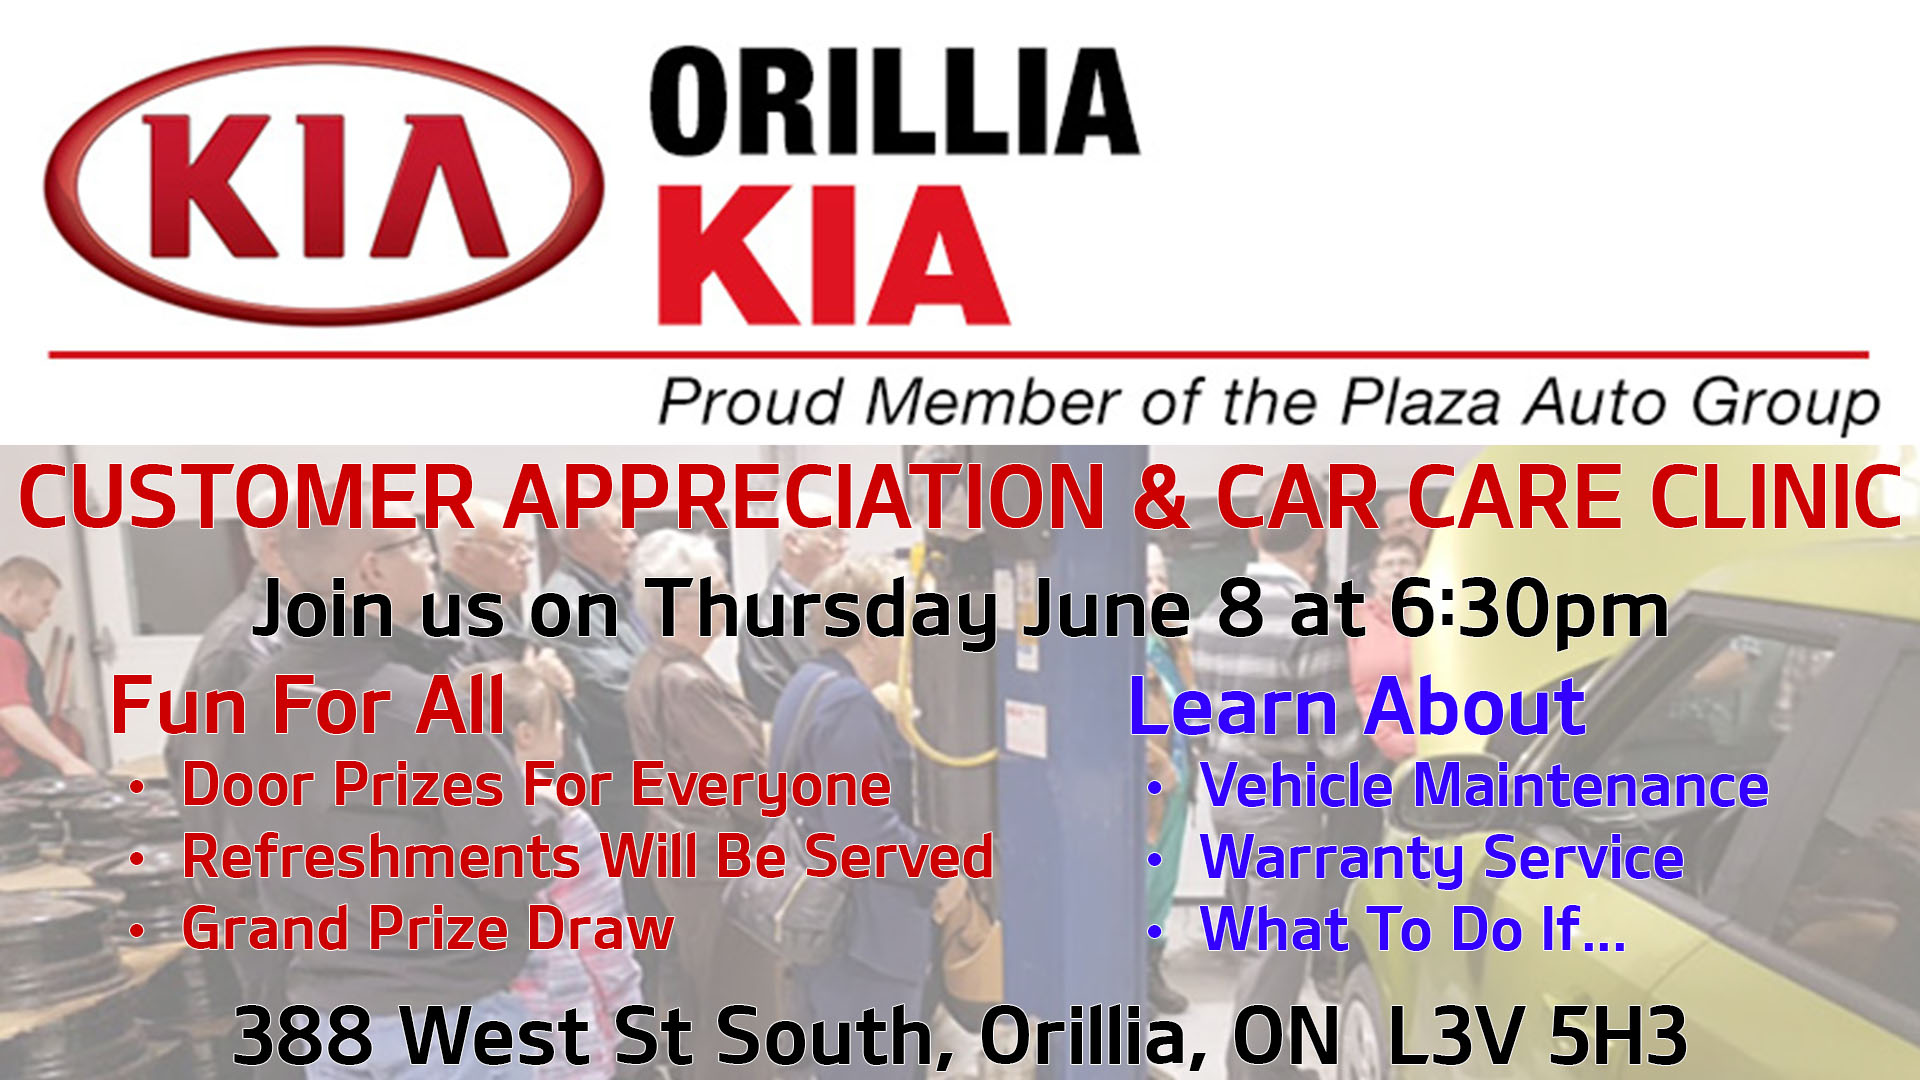 Customer Appreciation Evening & Car Care Clinic